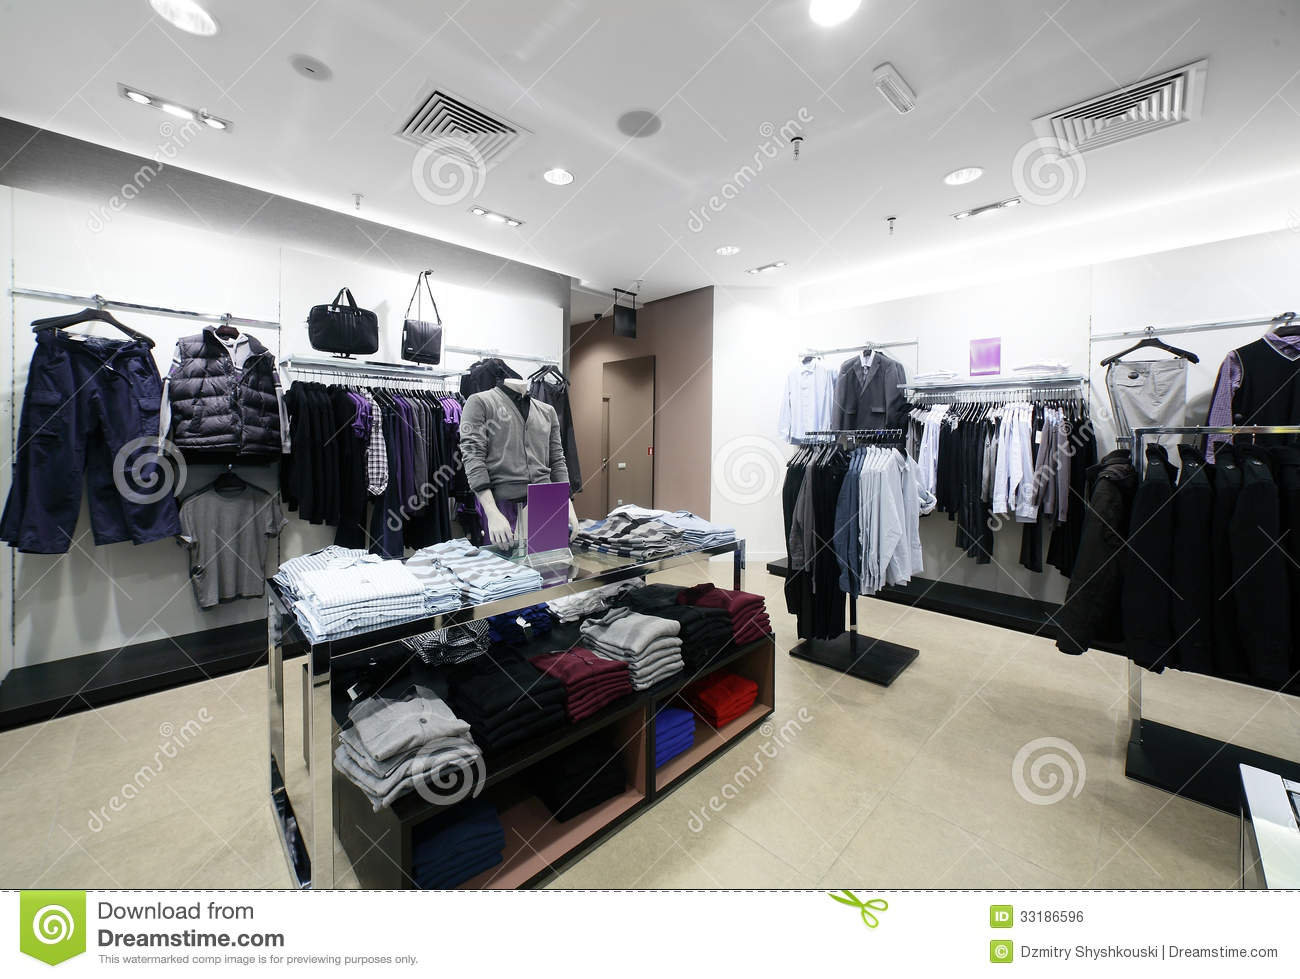 Clothing stores Europe clothing stores